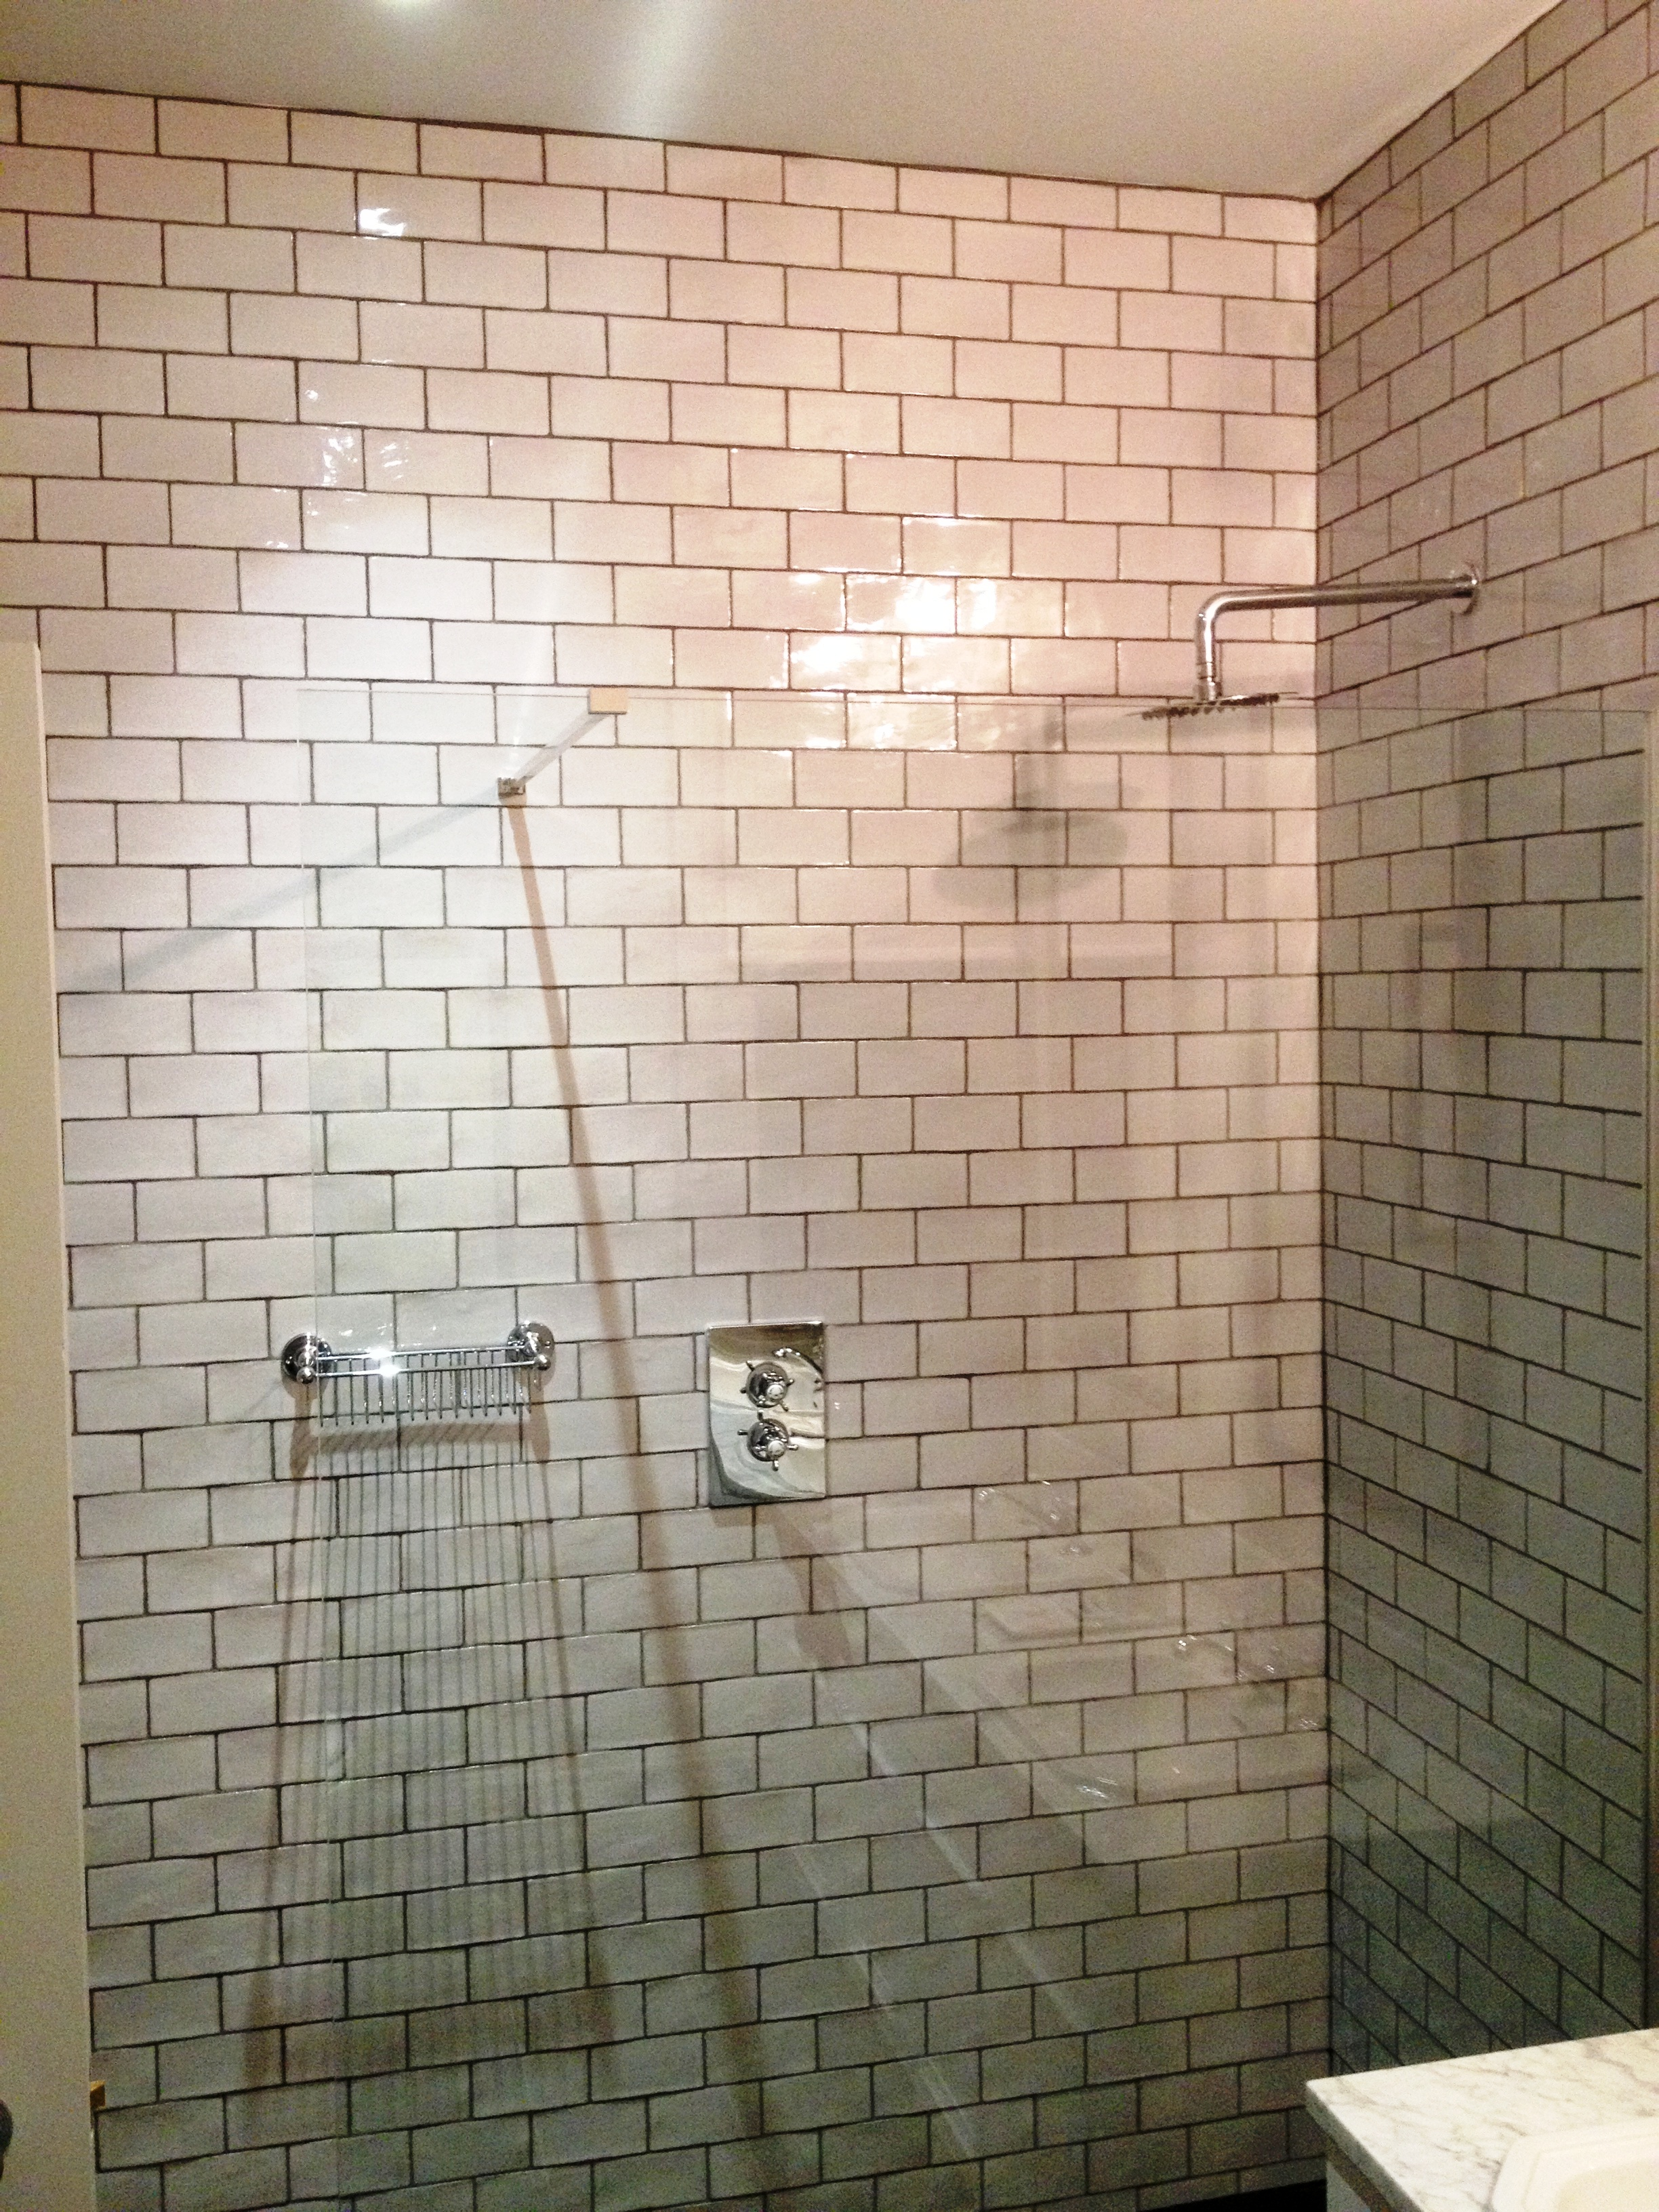 The Tommfield Hotel rooms shower - kenningtonrunoff.com